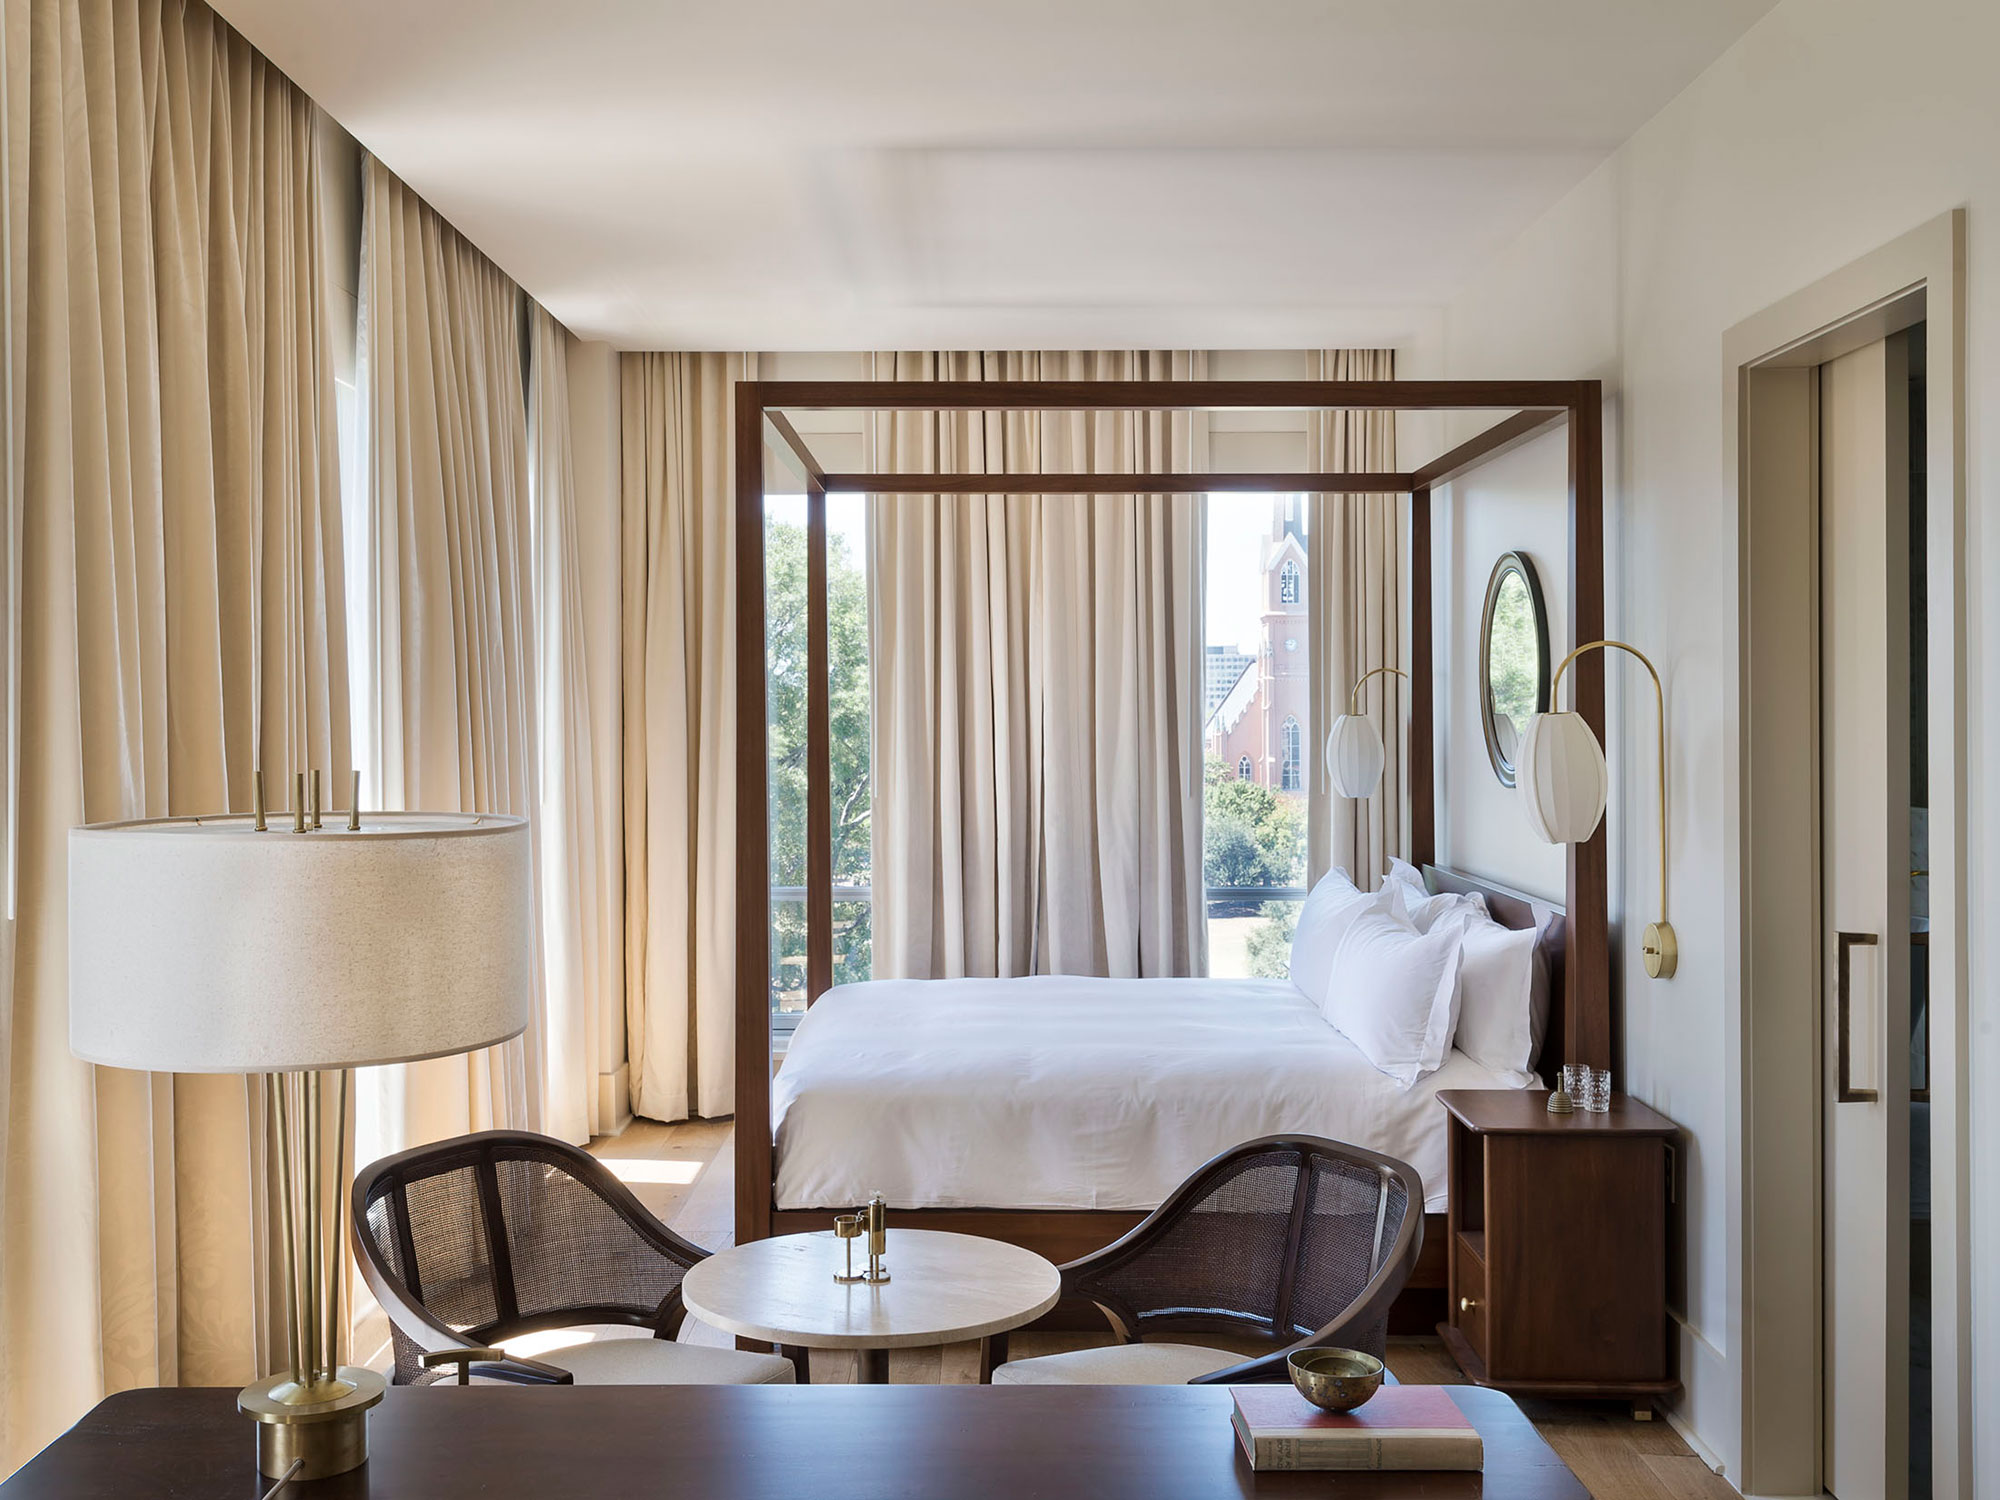 The dewberry hotel workstead hospitality interior design - 2 bedroom hotels in charleston sc ...